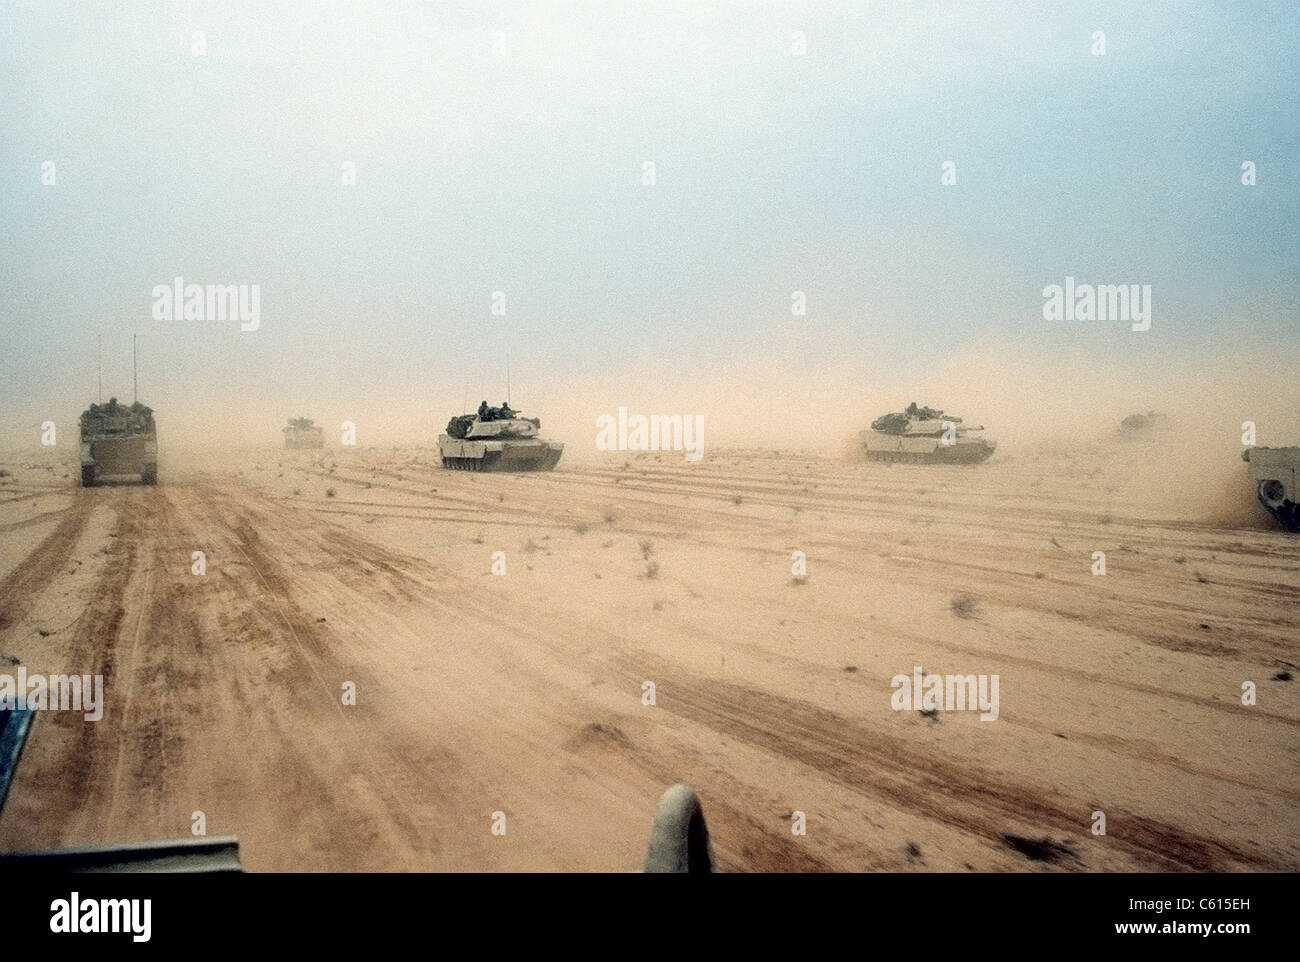 Abrams tanks of the 1st Armored Division 7th Corps move across the desert in northern Kuwait during Operation Desert - Stock Image